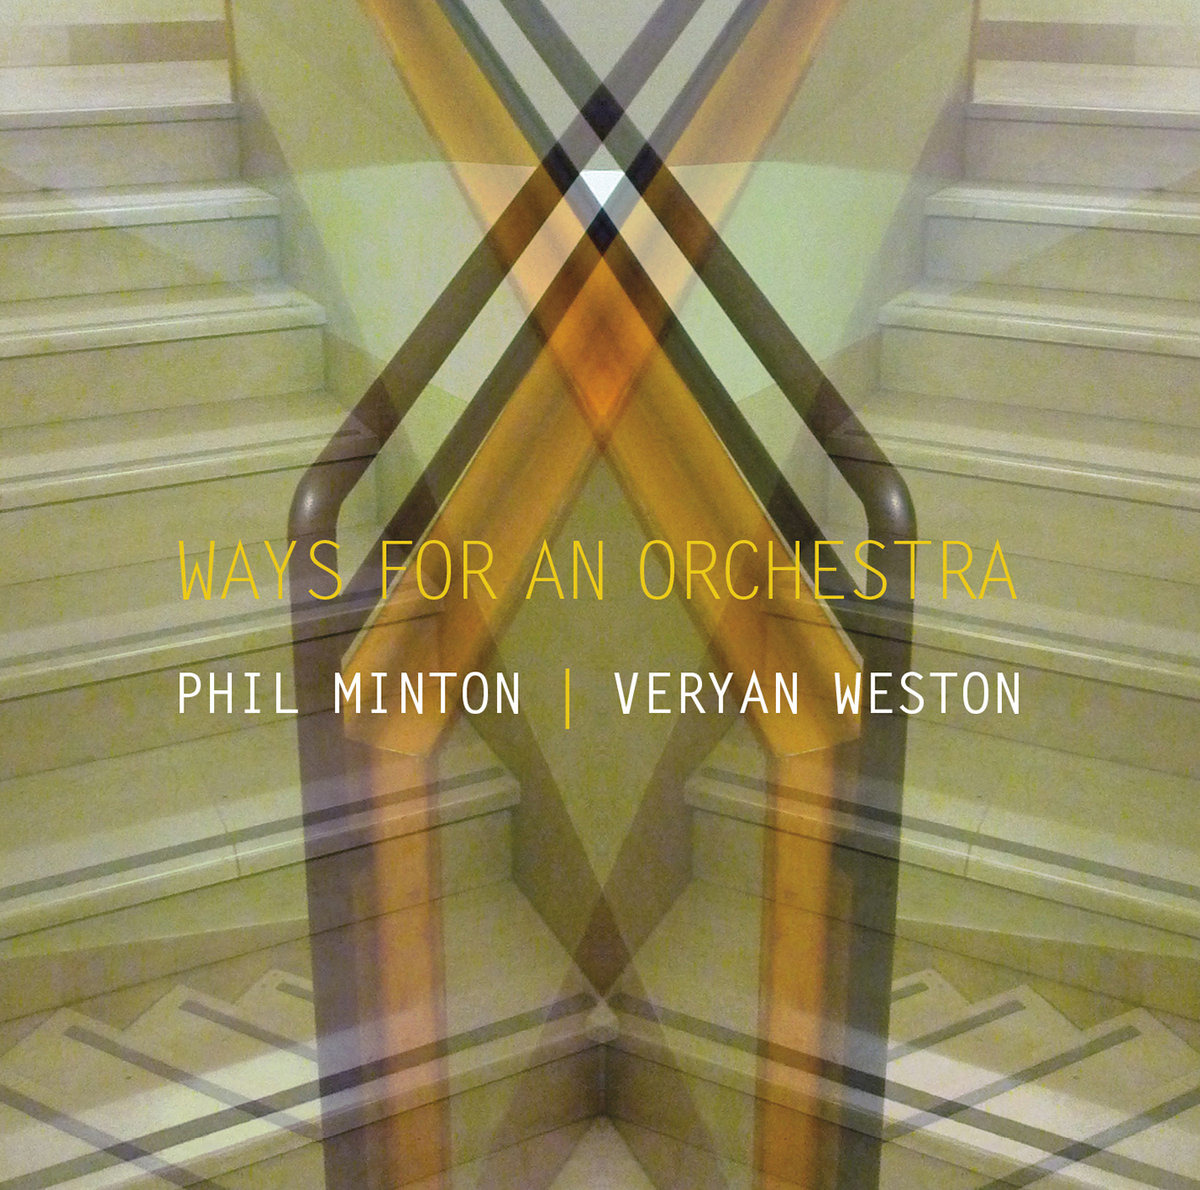 Ways For An Orchestra - Minton, Phil & Veryan Weston - Musik - ANGELICA - 0752725041621 - January 3, 2020